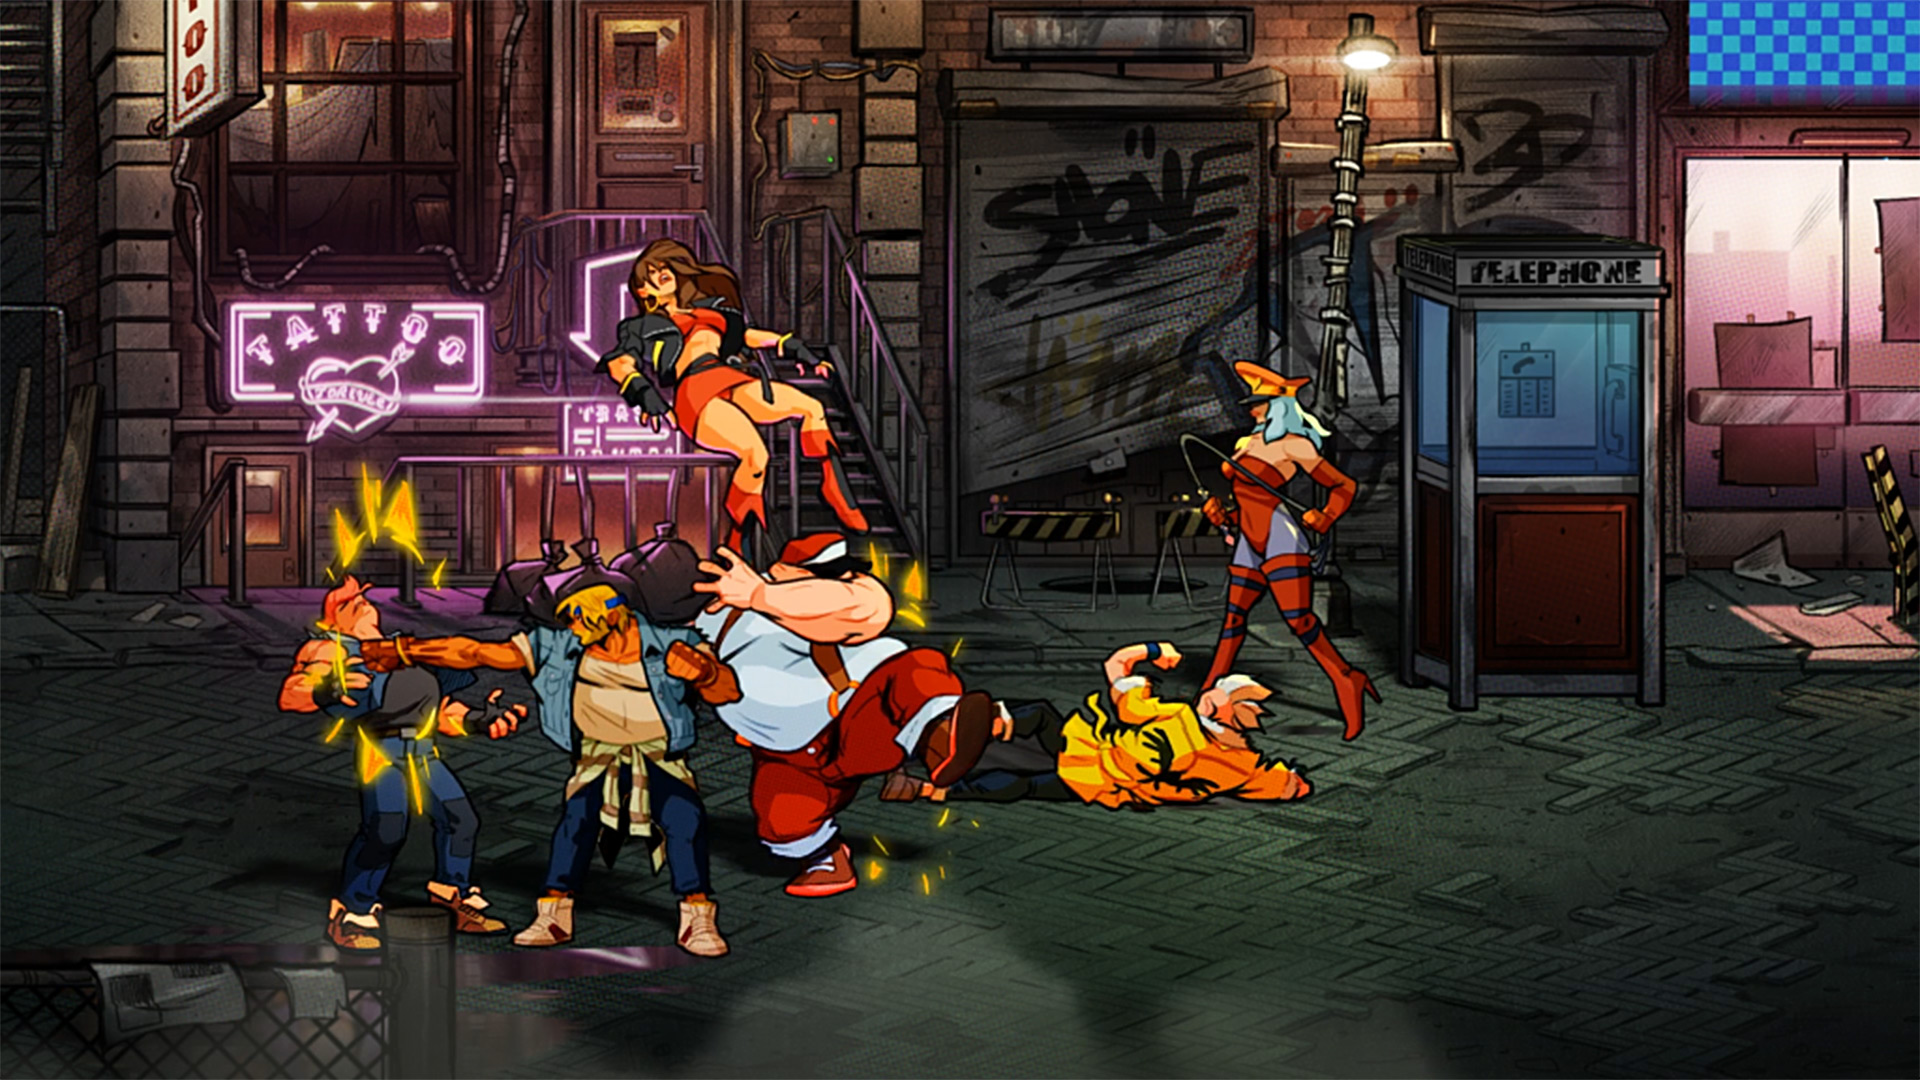 Quelle: Dotemu - Streets of Rage 4